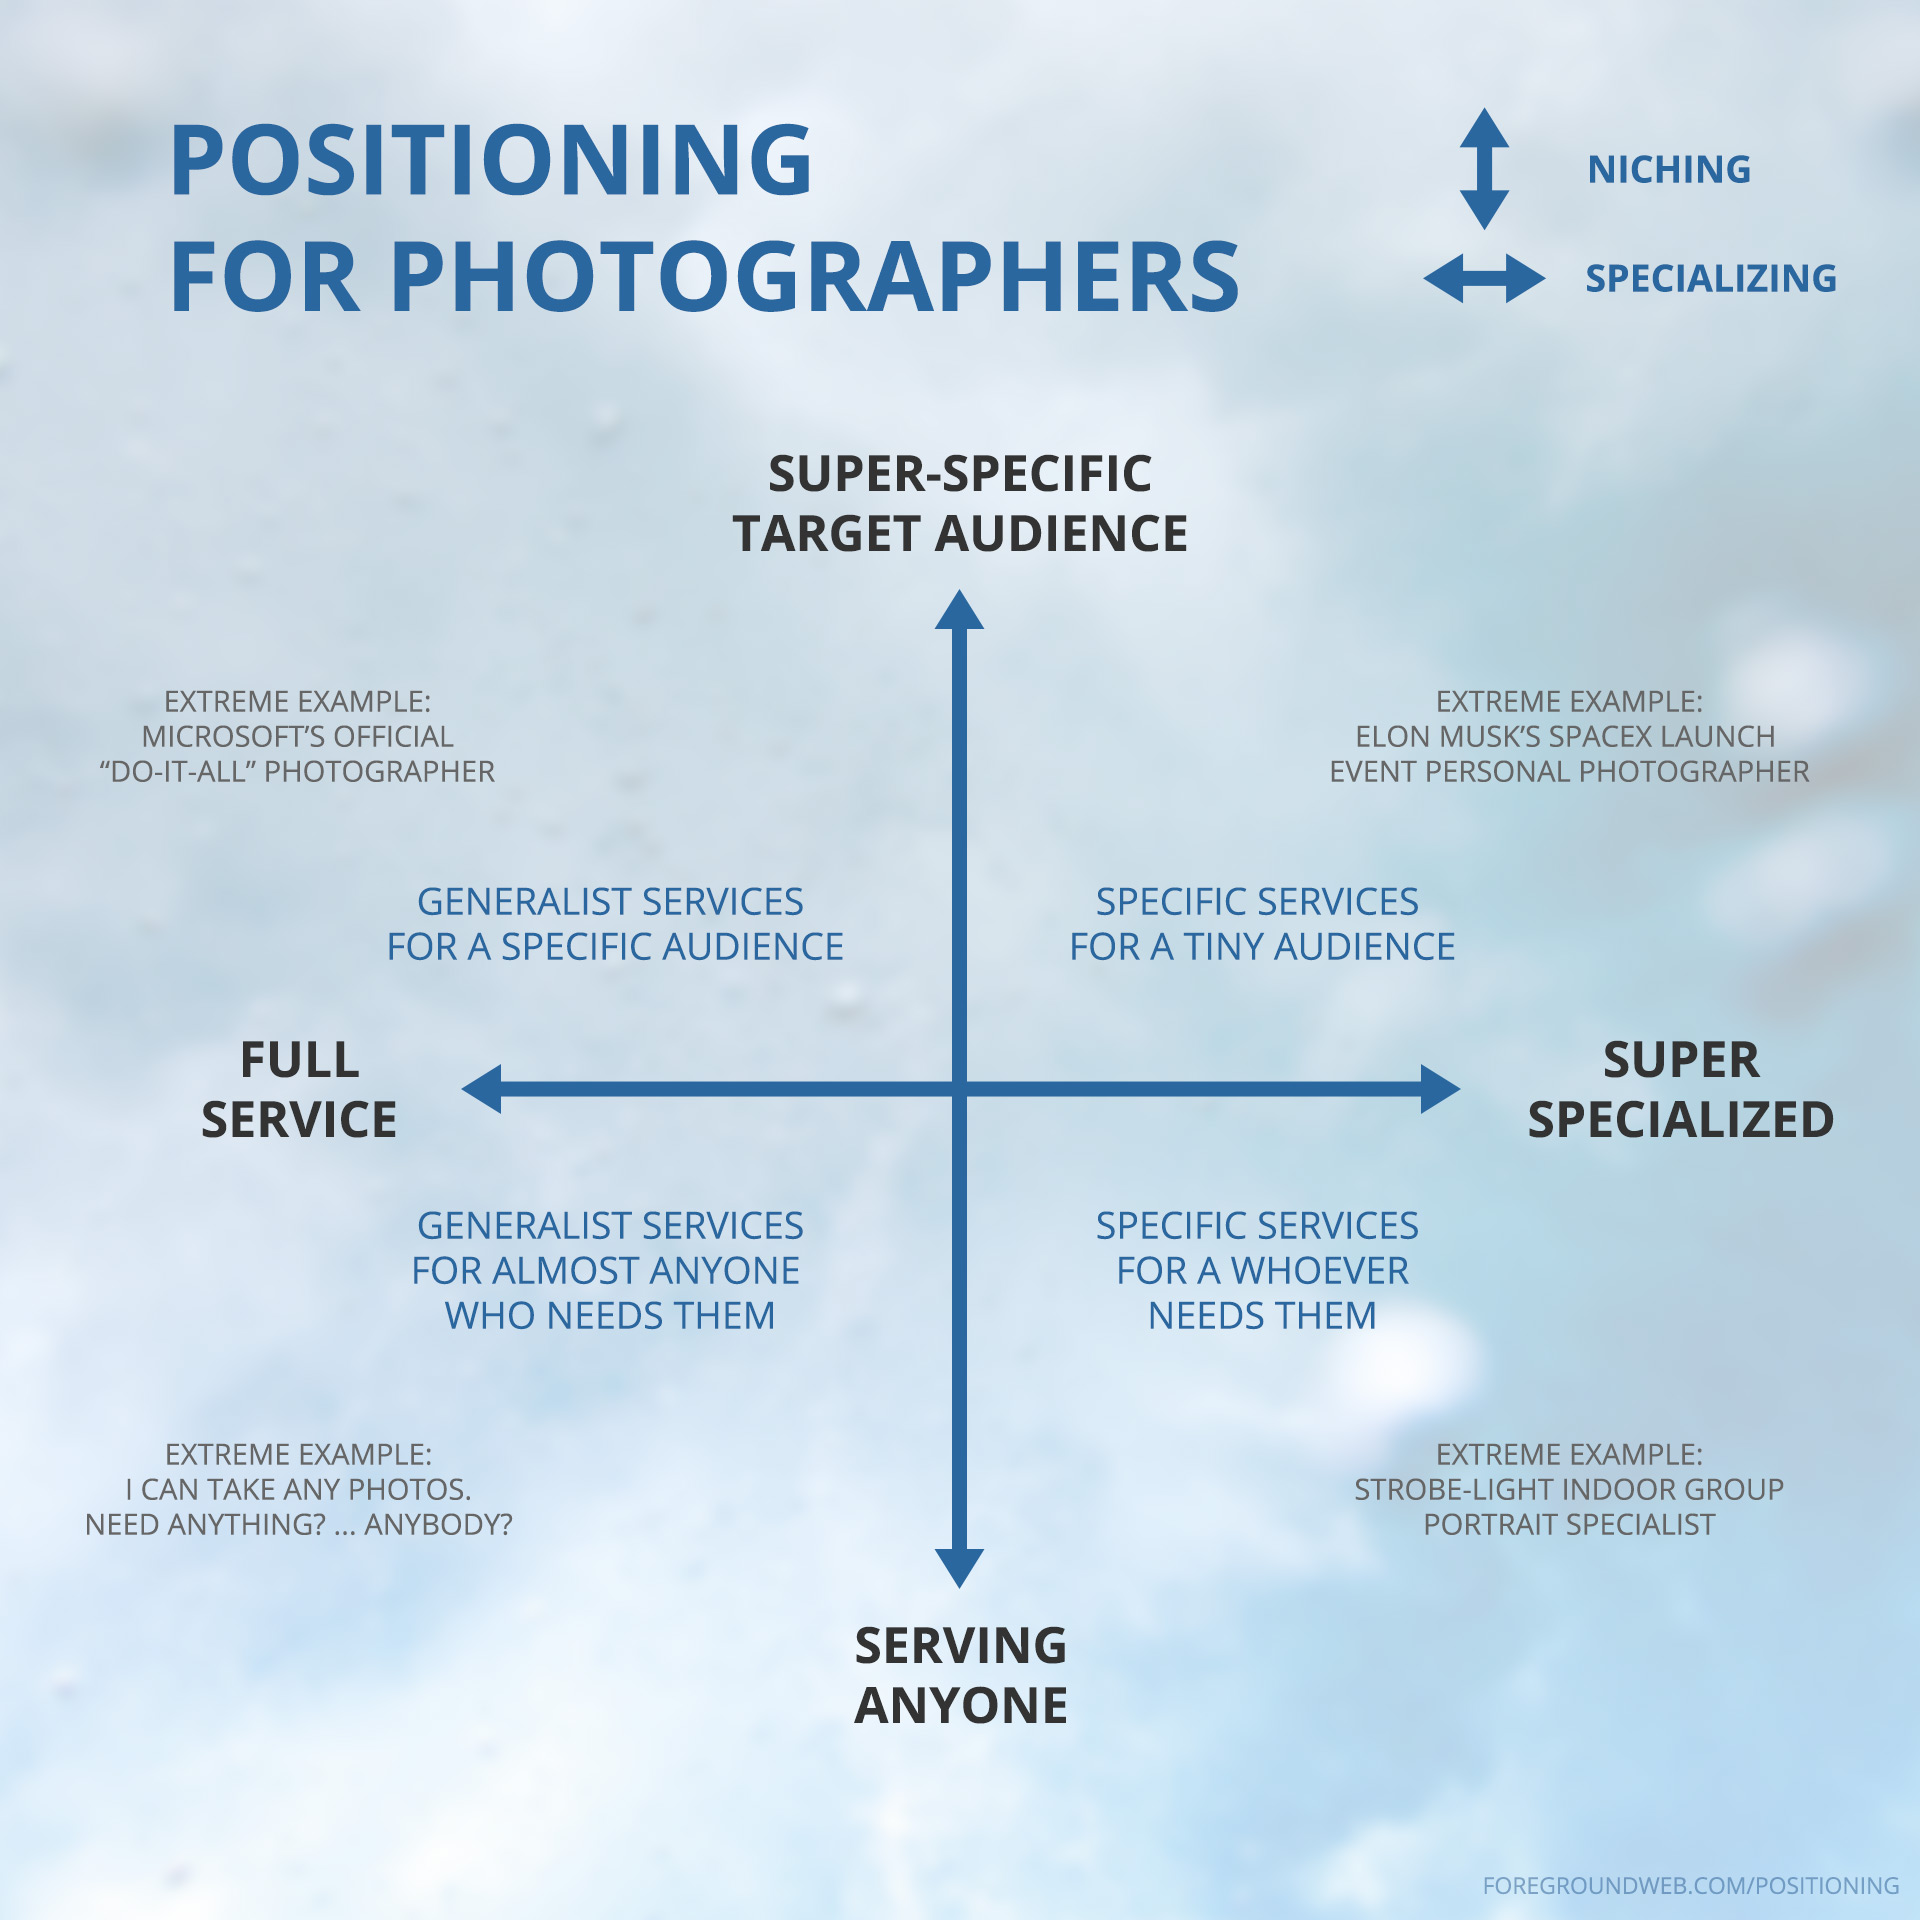 Business positioning chart for photographers: niching vs specializing, with examples